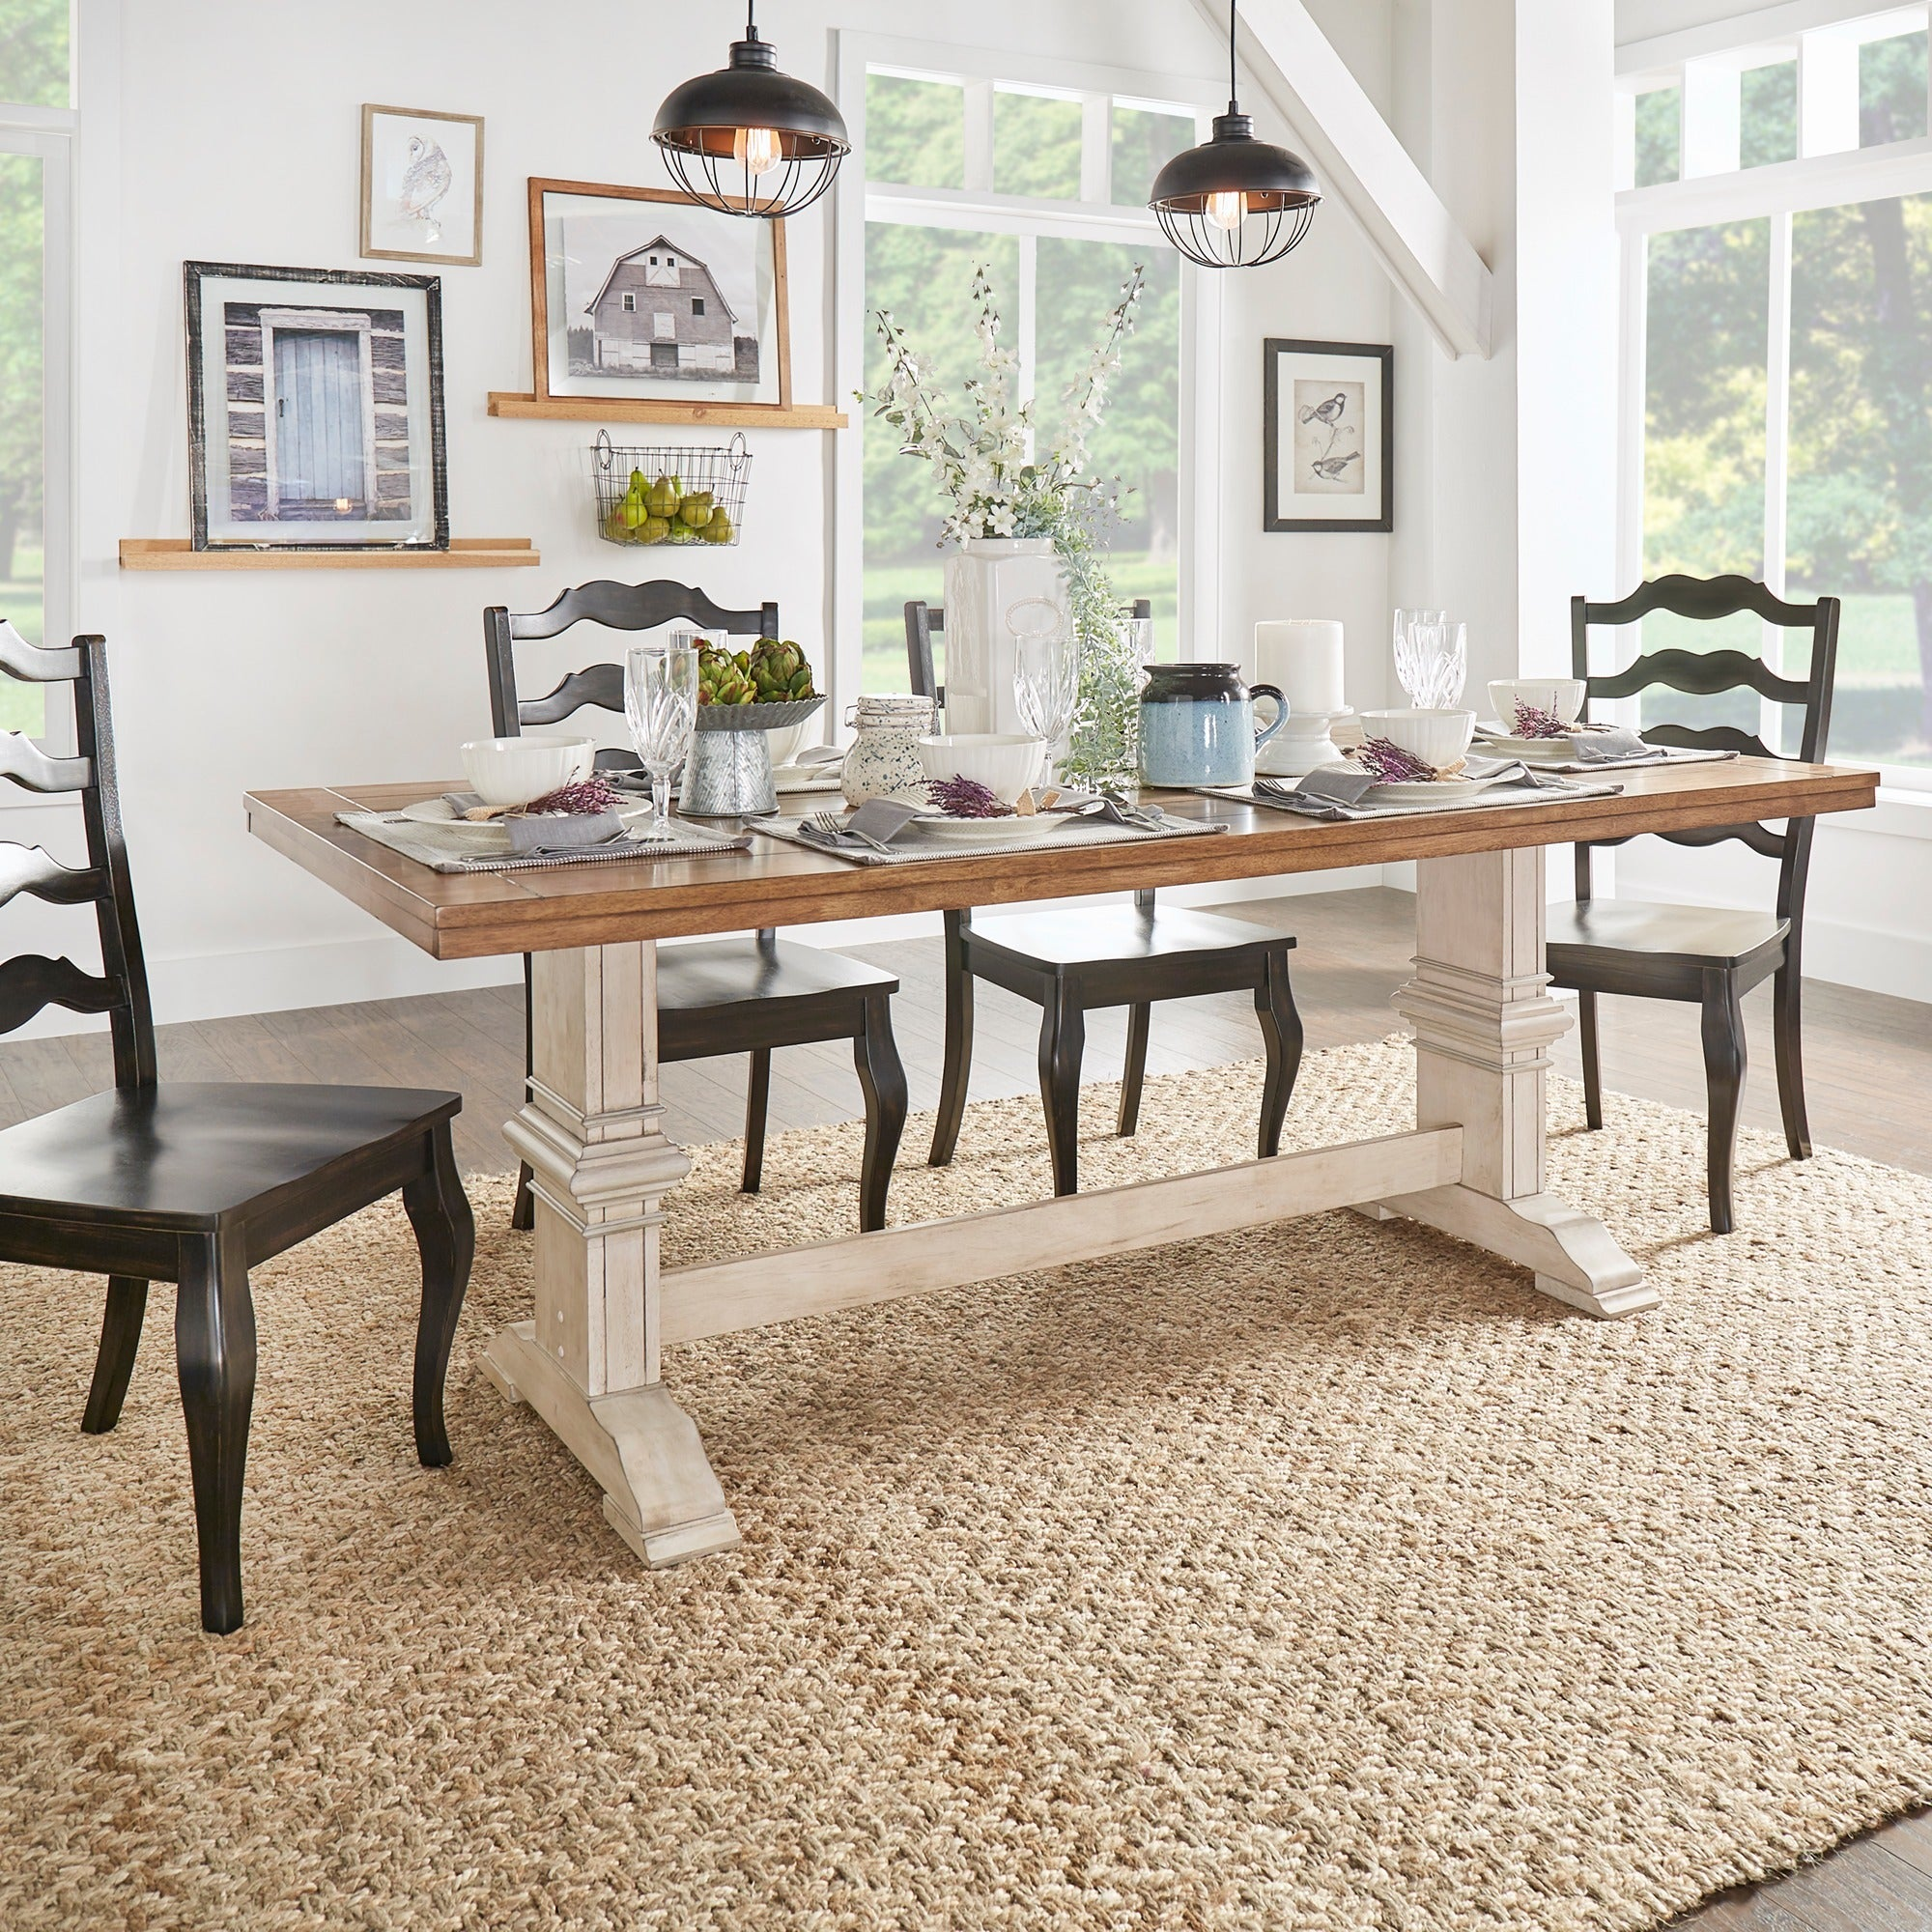 Eleanor Two Tone Rectangular Solid Wood Top Dining Table By Inspire Q Clic On Free Shipping Today 13535779